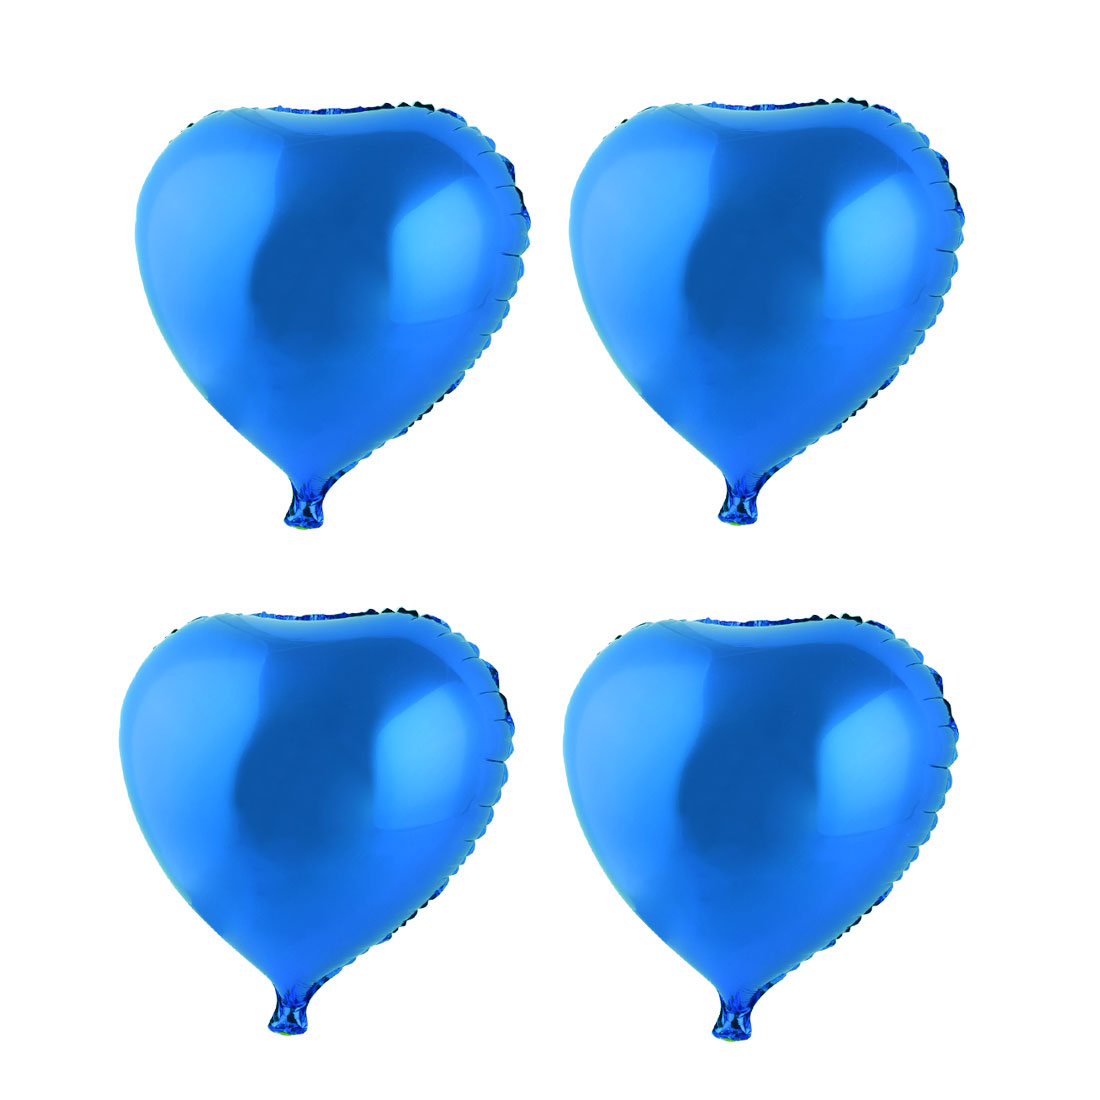 Birthday Wedding Party Valentine Foil Heart Shaped Decoration Balloon Blue 45cm 4 PCS